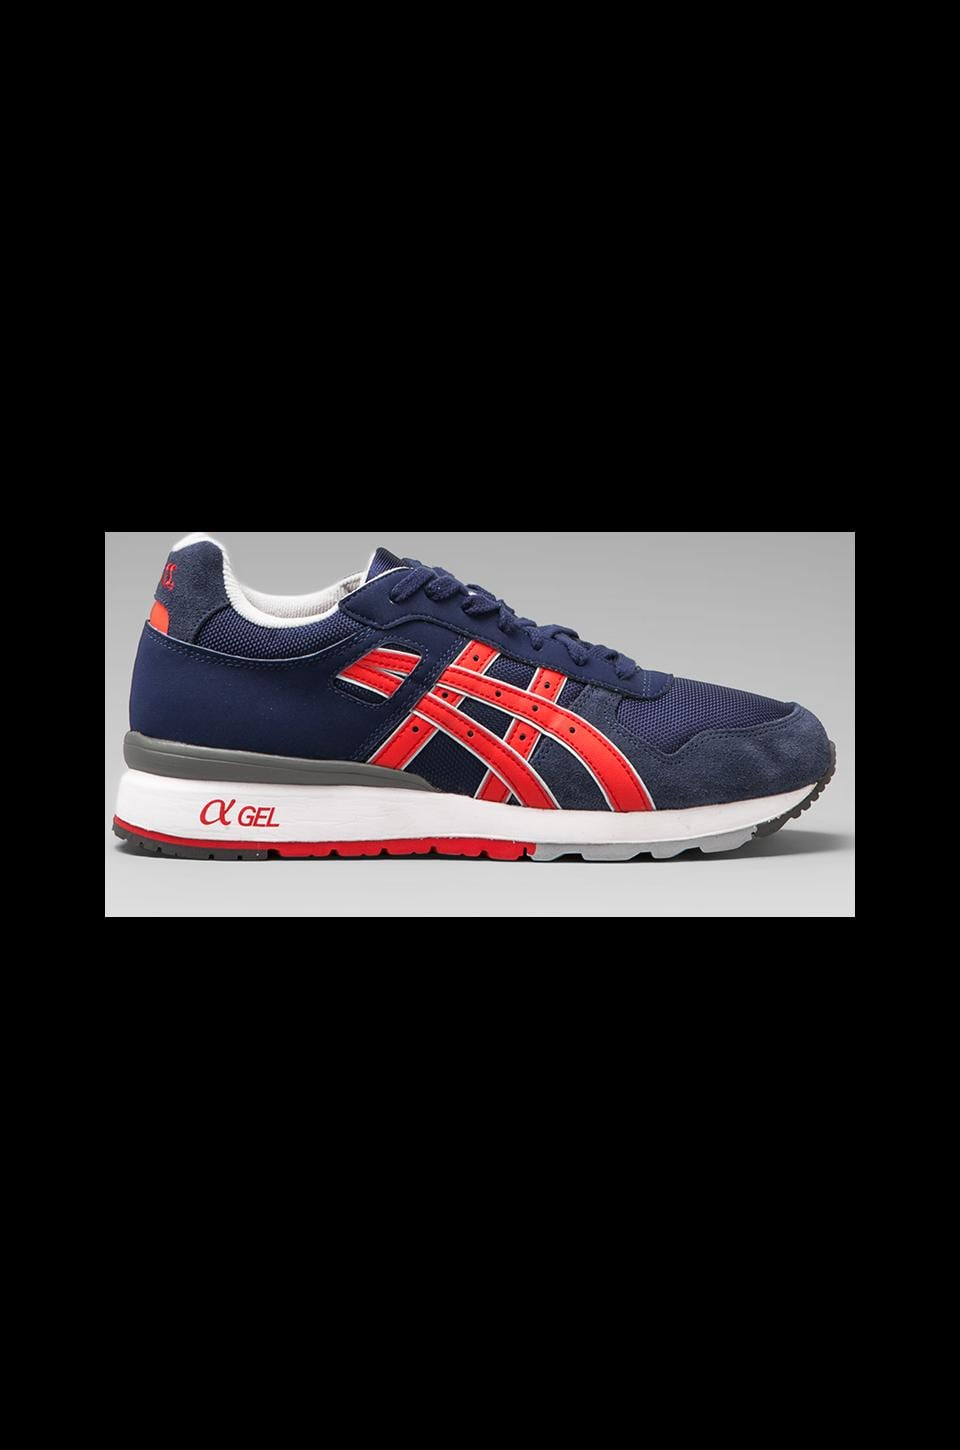 Asics GT II in Navy/Red